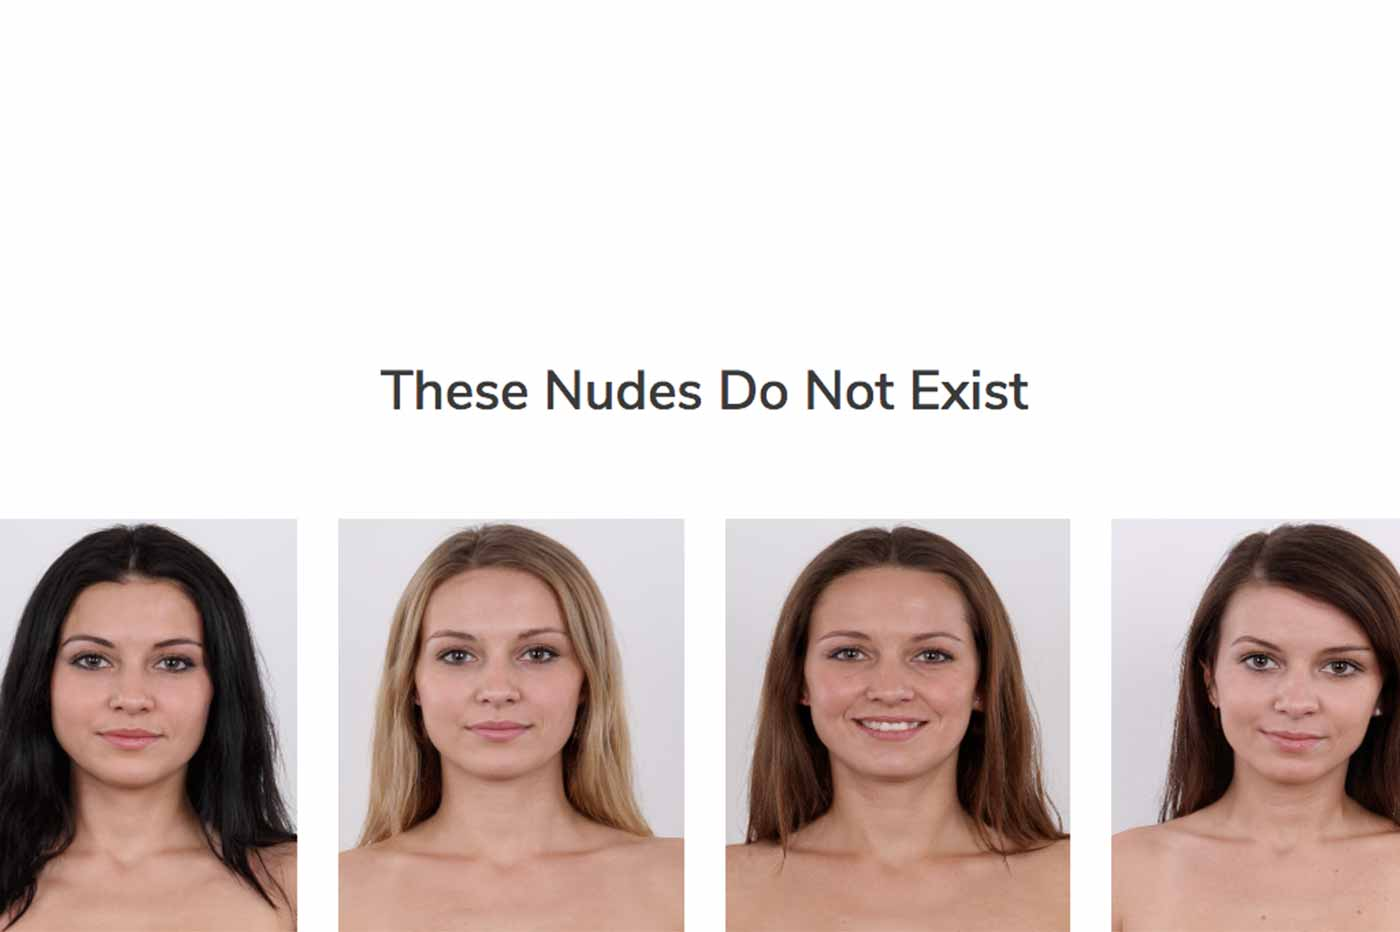 startup These Nudes Do Not Exist nudes femmes